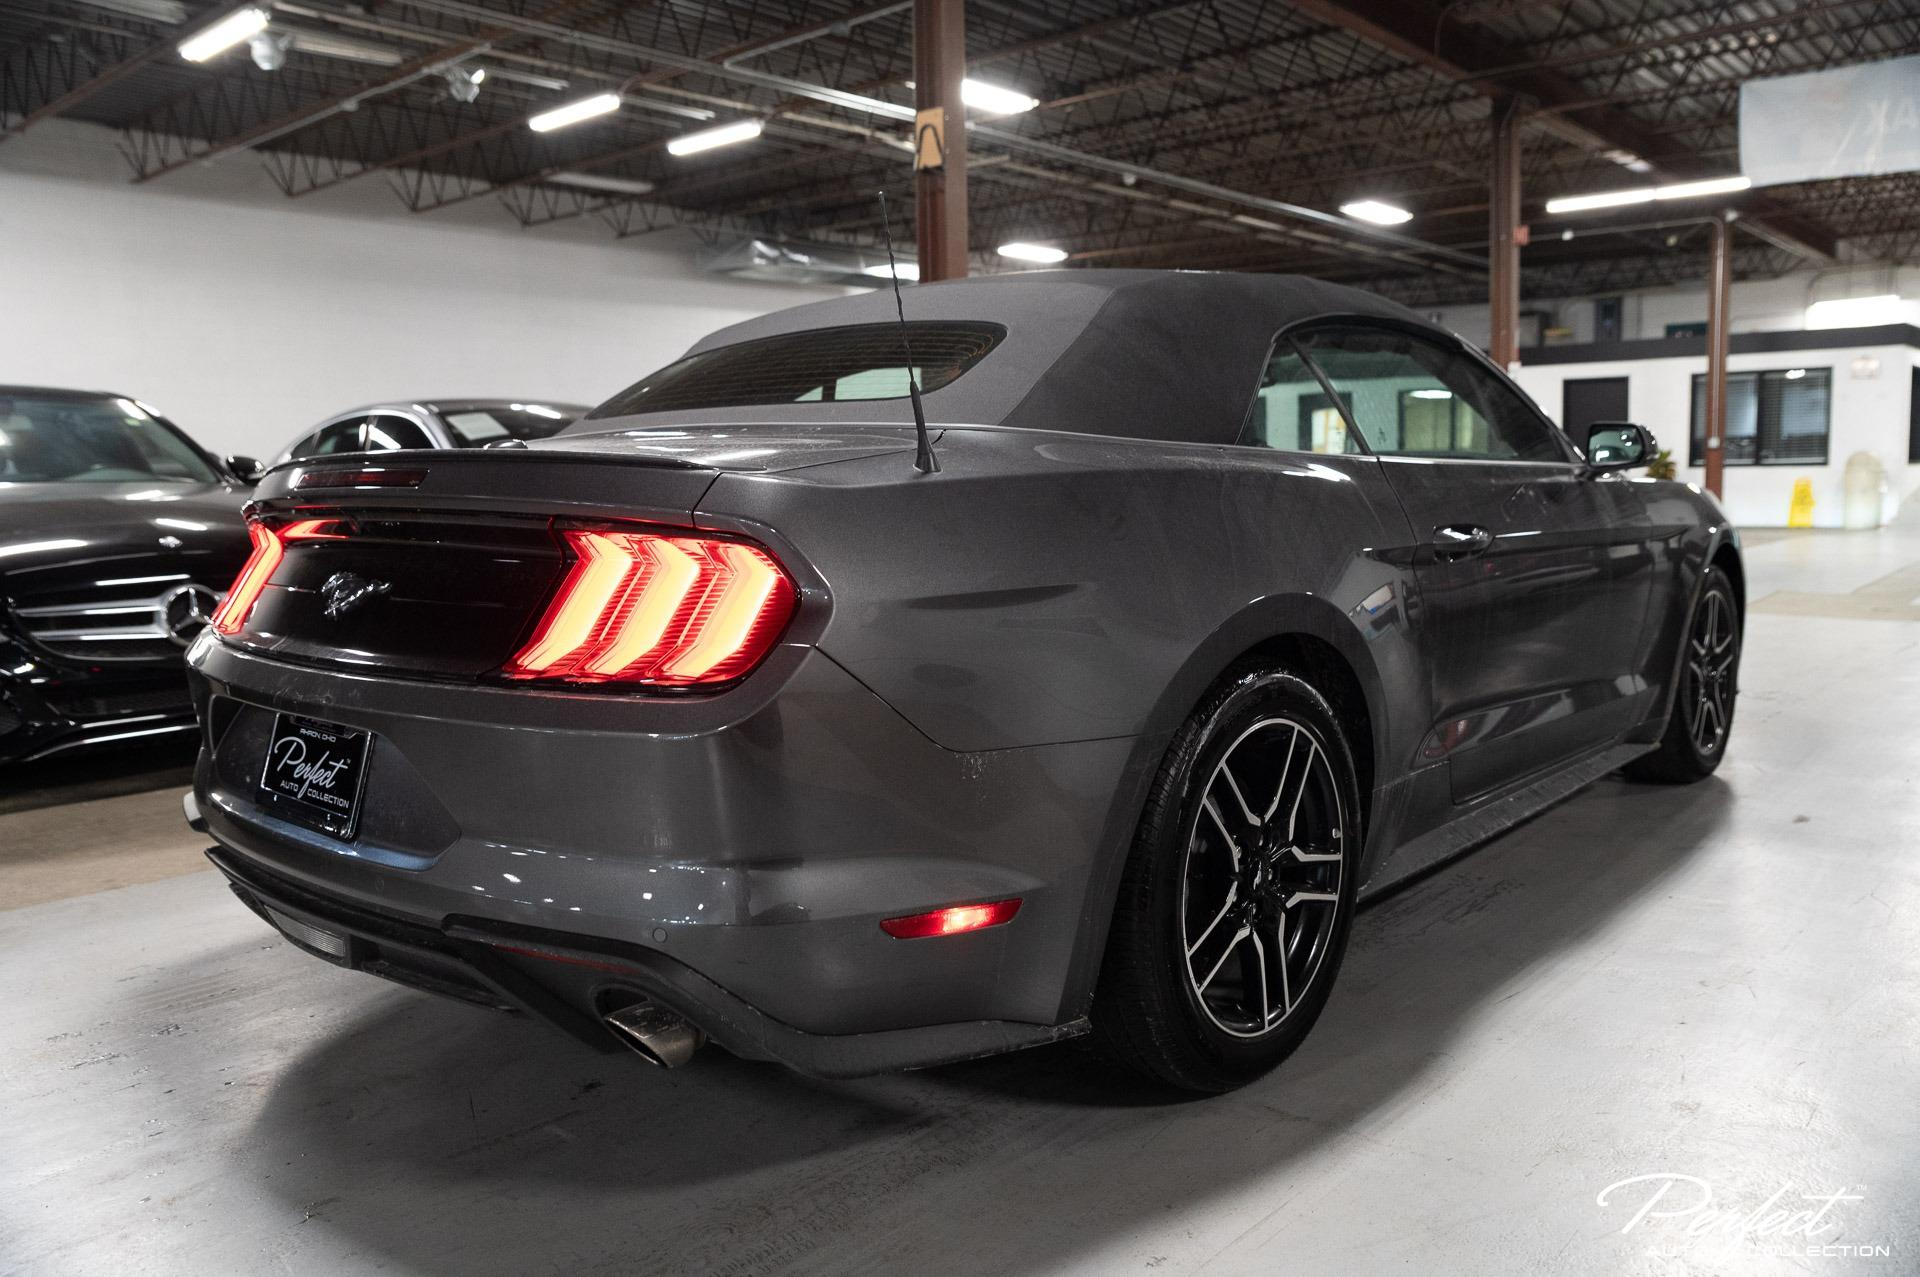 Used 2020 Ford Mustang EcoBoost Premium for sale $26,895 at Perfect Auto Collection in Akron OH 44310 4